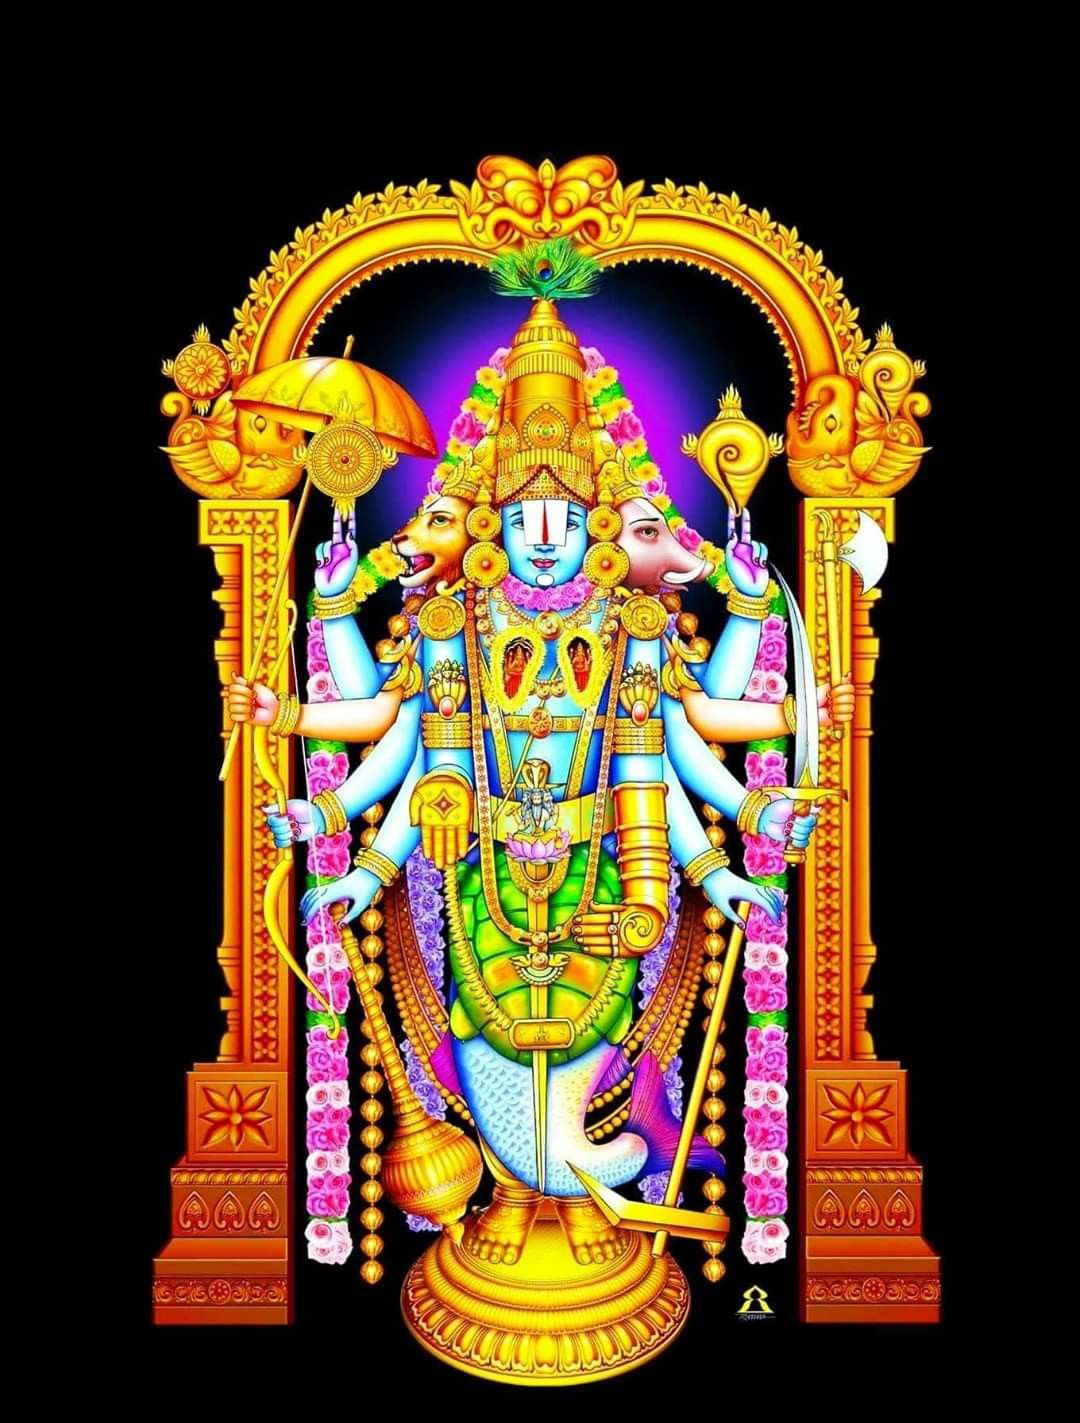 Pin by Ponnu swamy on Lord vishnu wallpapers in 2020